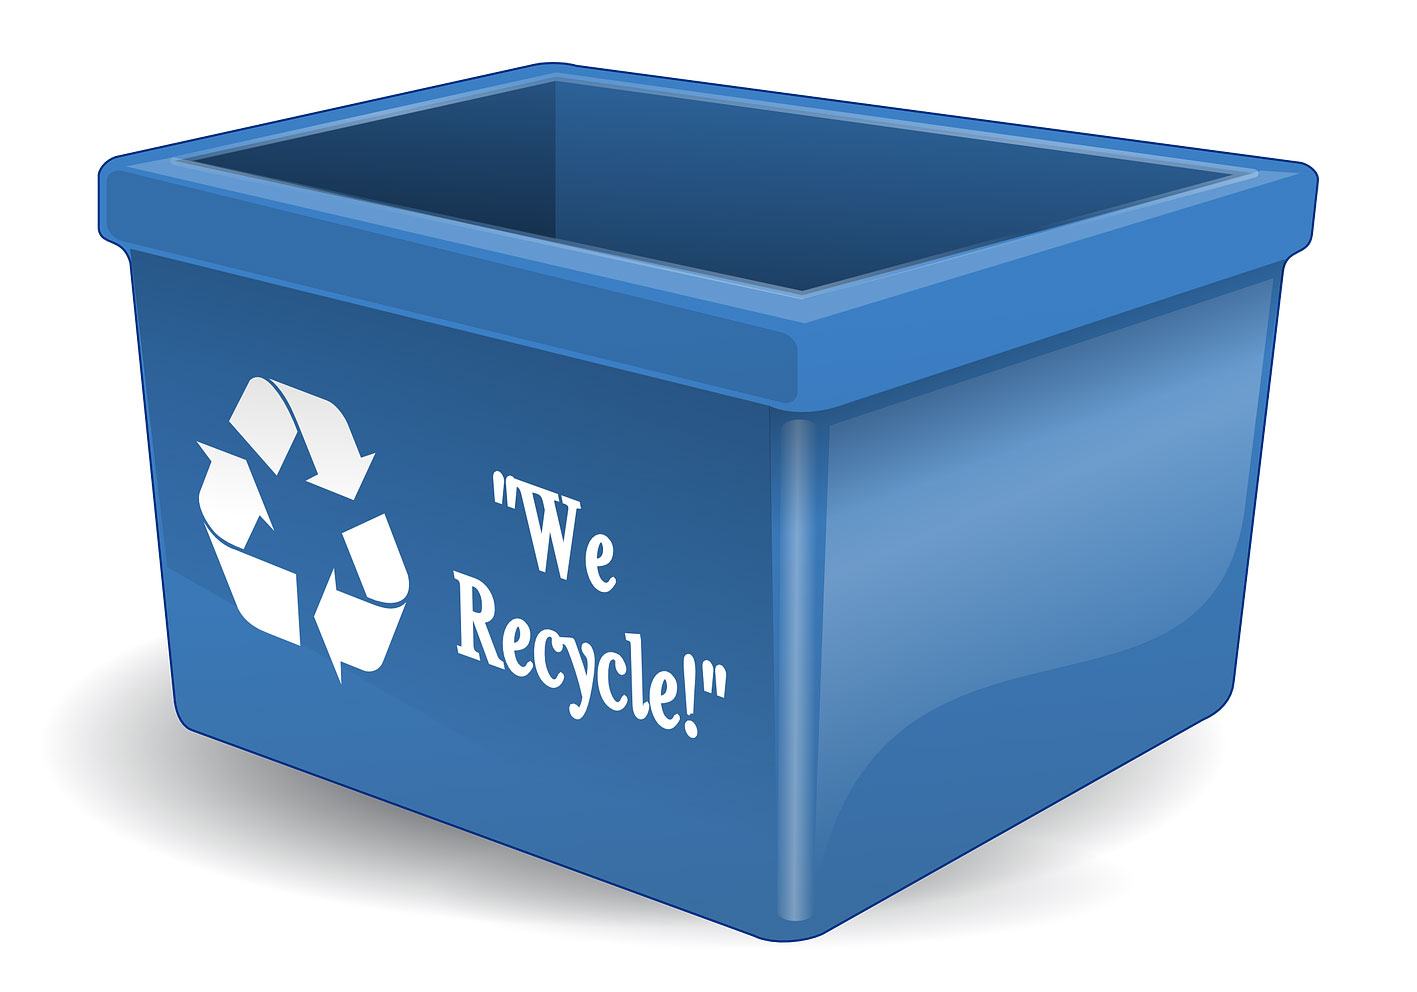 Helpful Tips to Reduce Your Household Waste